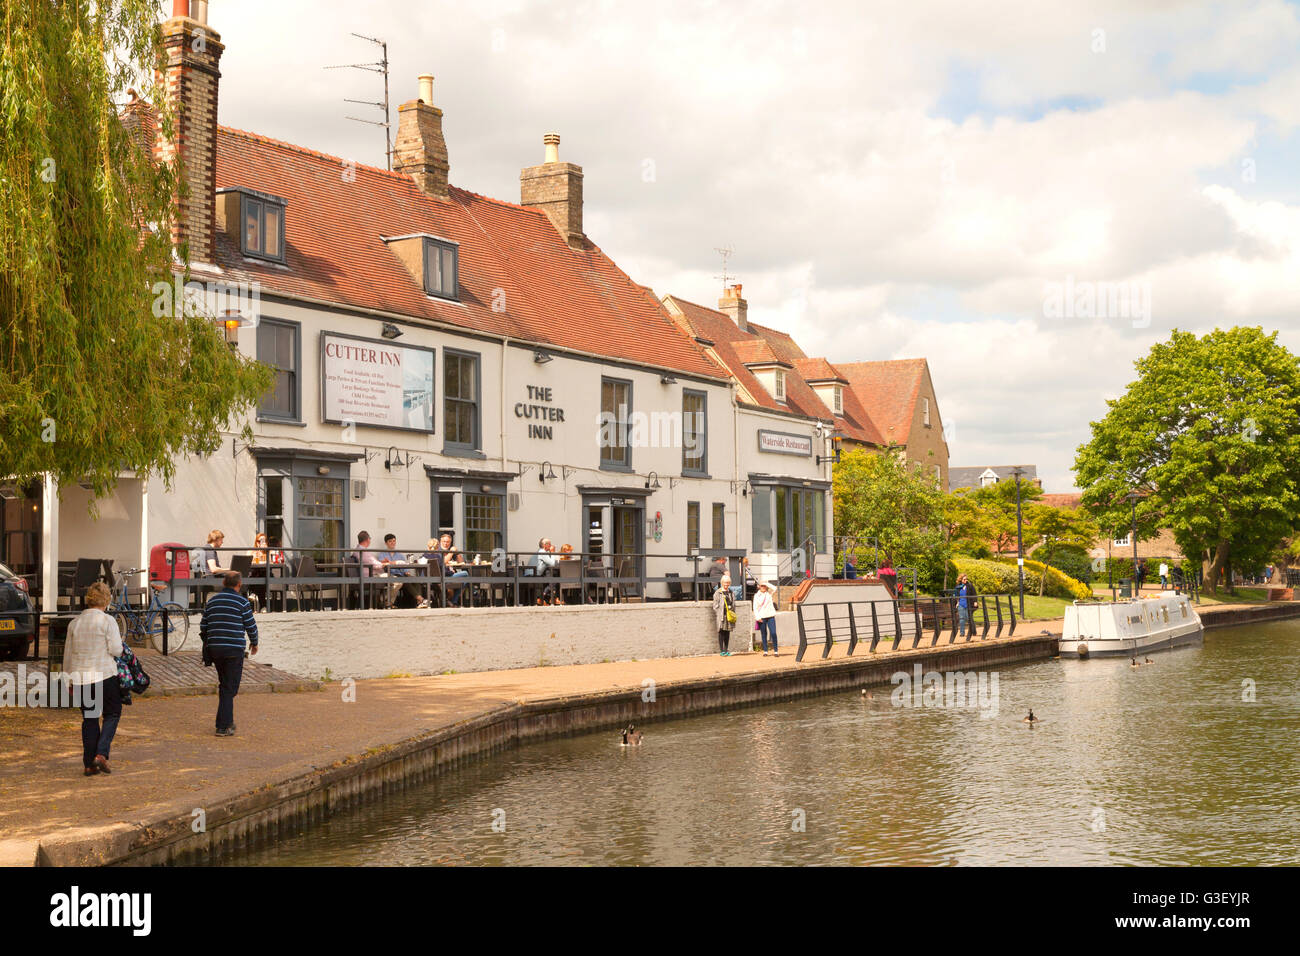 The Cutter Inn, a popular pub restaurant on the banks of the Great Ouse river, Ely city centre, Ely, Cambridgeshire - Stock Image